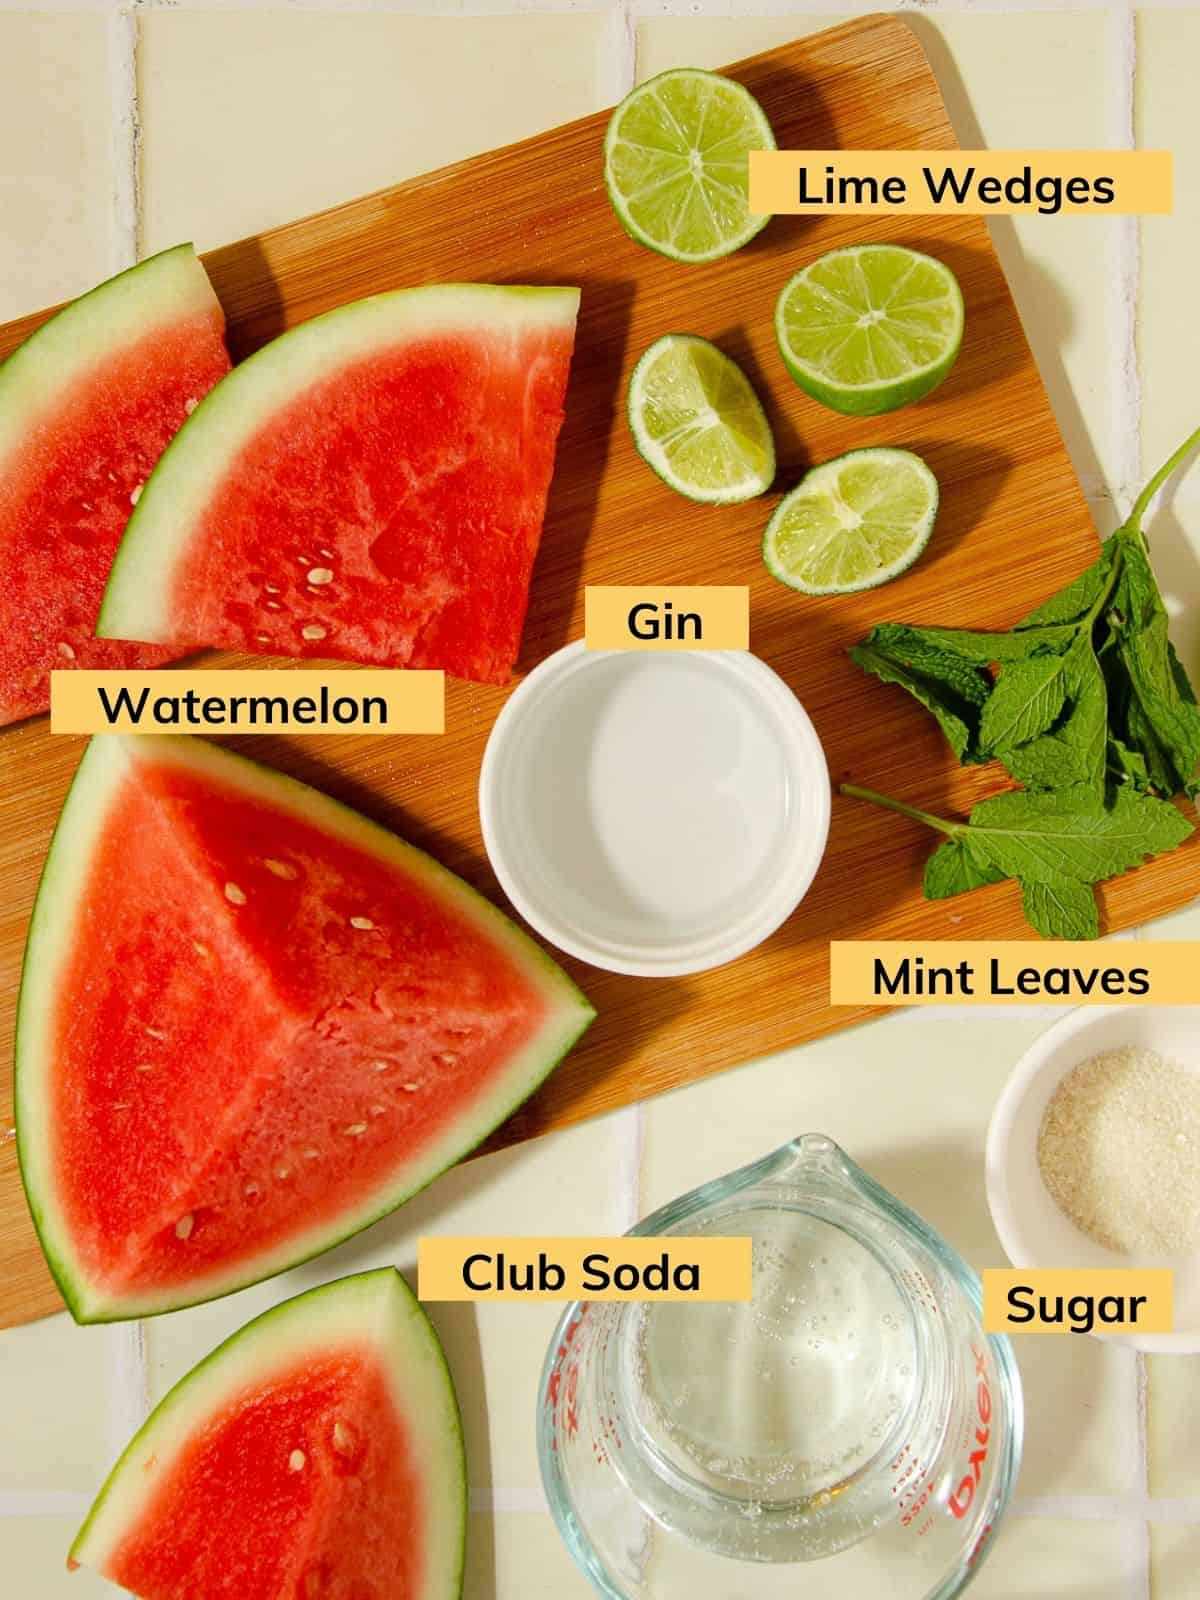 ingredients for a watermelon gin mojito: a watermelon cut into wedges, some lime wedges, fresh mint leaves, gin in a white ramekin, granulated sugar in a white bowl, and club soda in a glass measuring cup